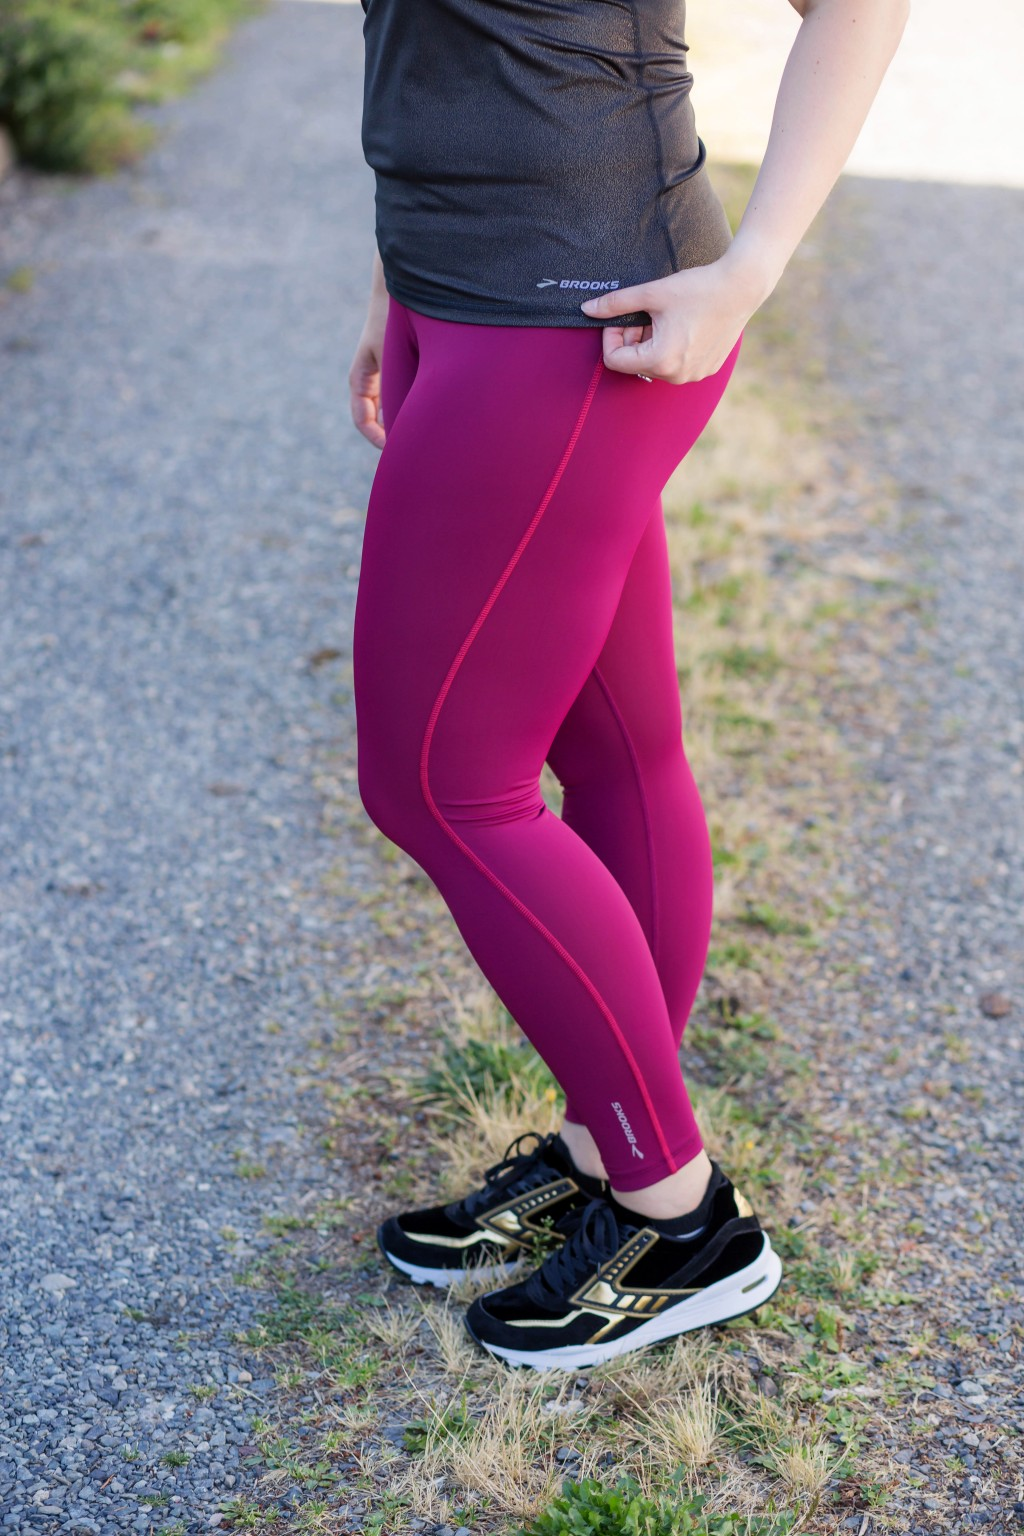 7-brooks-running-womens-go-to-tights-in-maroon